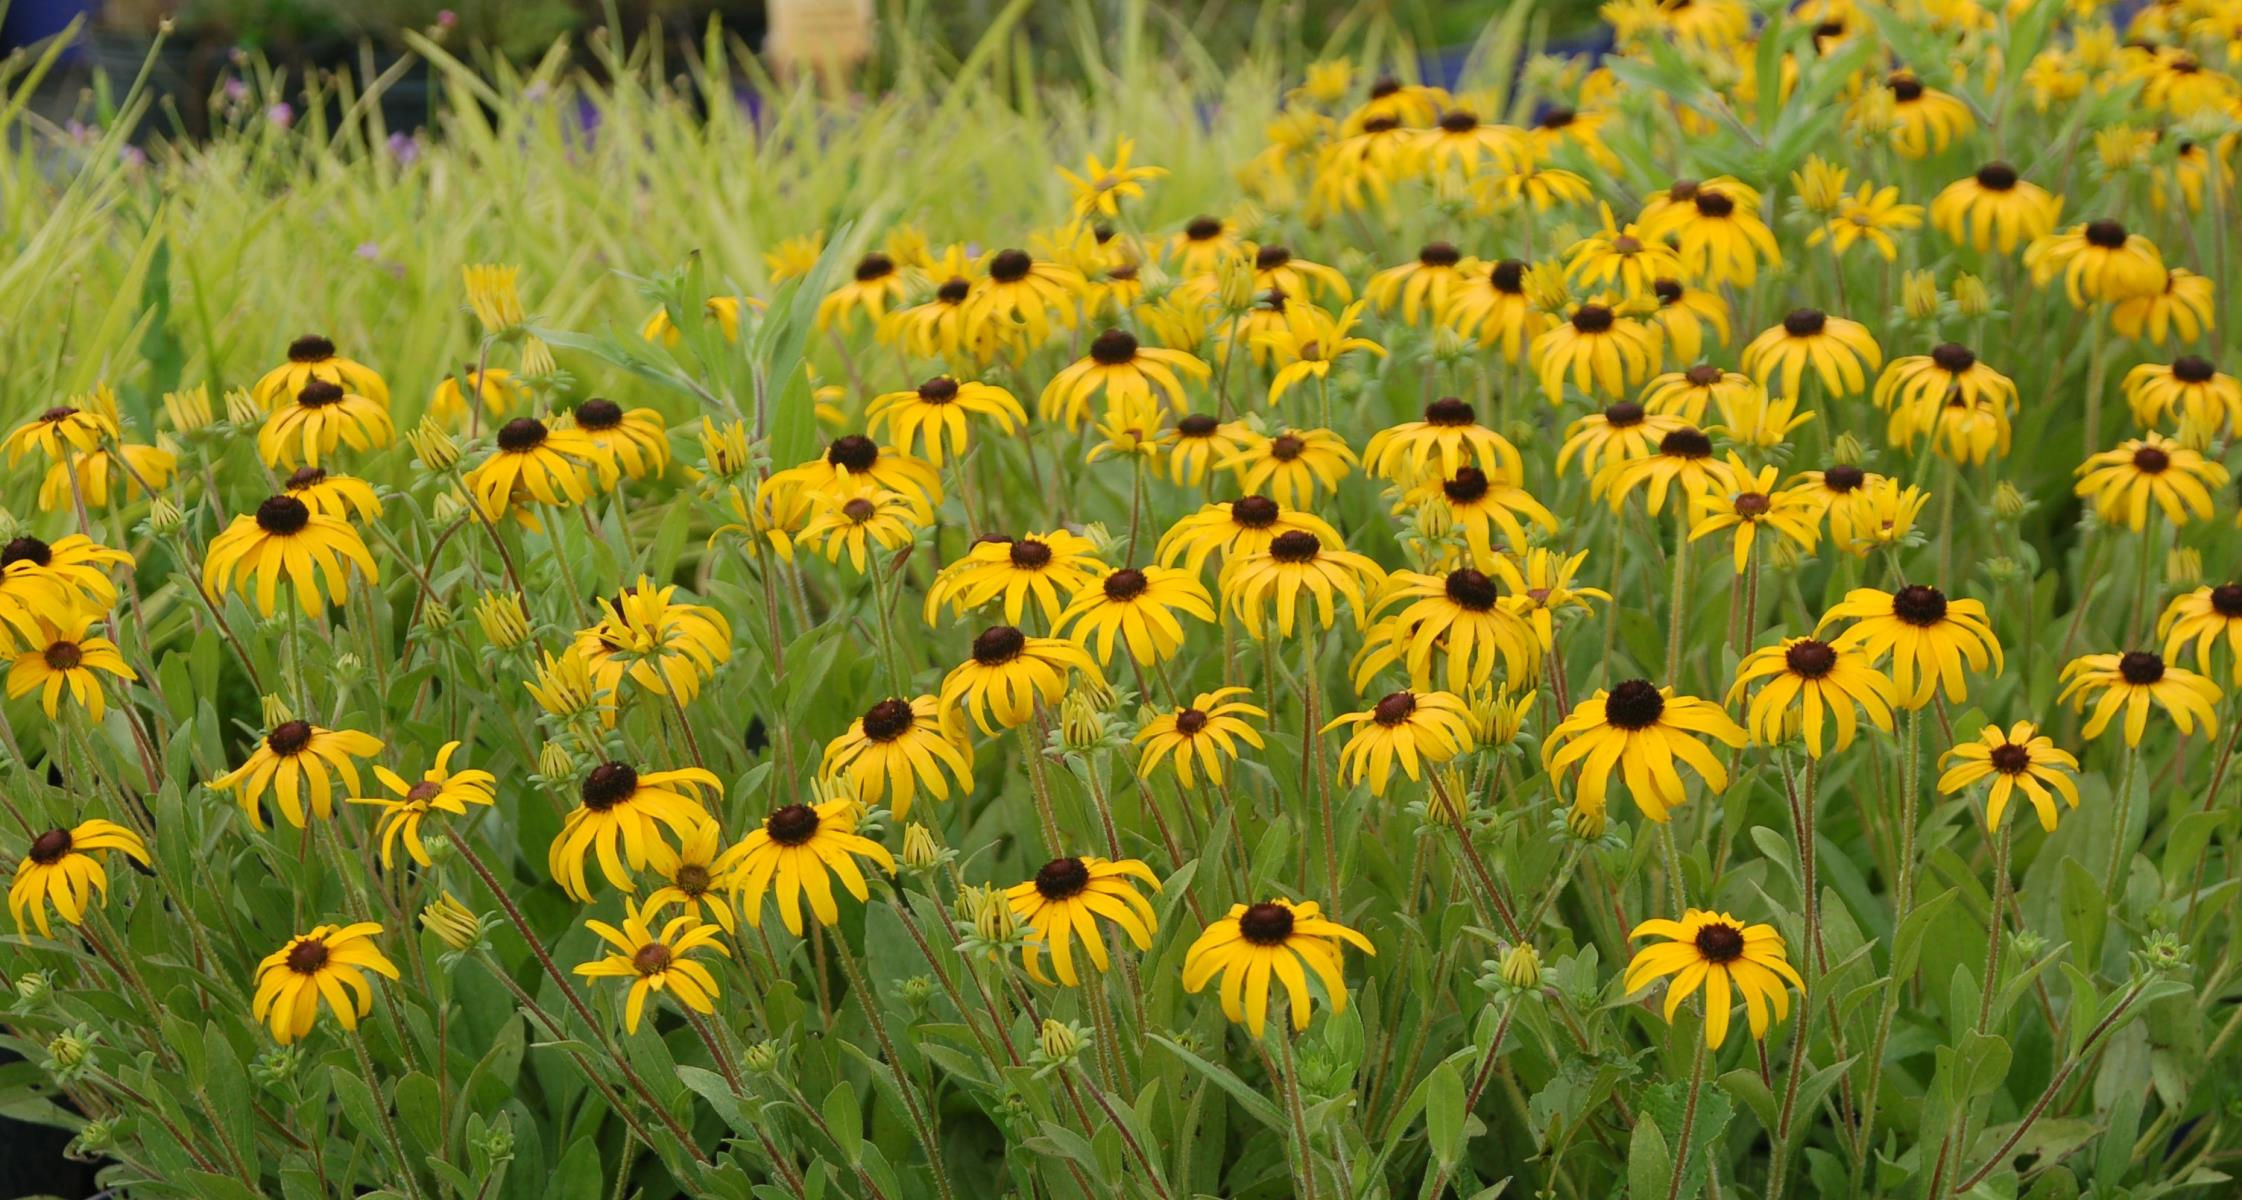 #TeachingTuesday: Coneflowers (Echinacea and Rudbeckia)